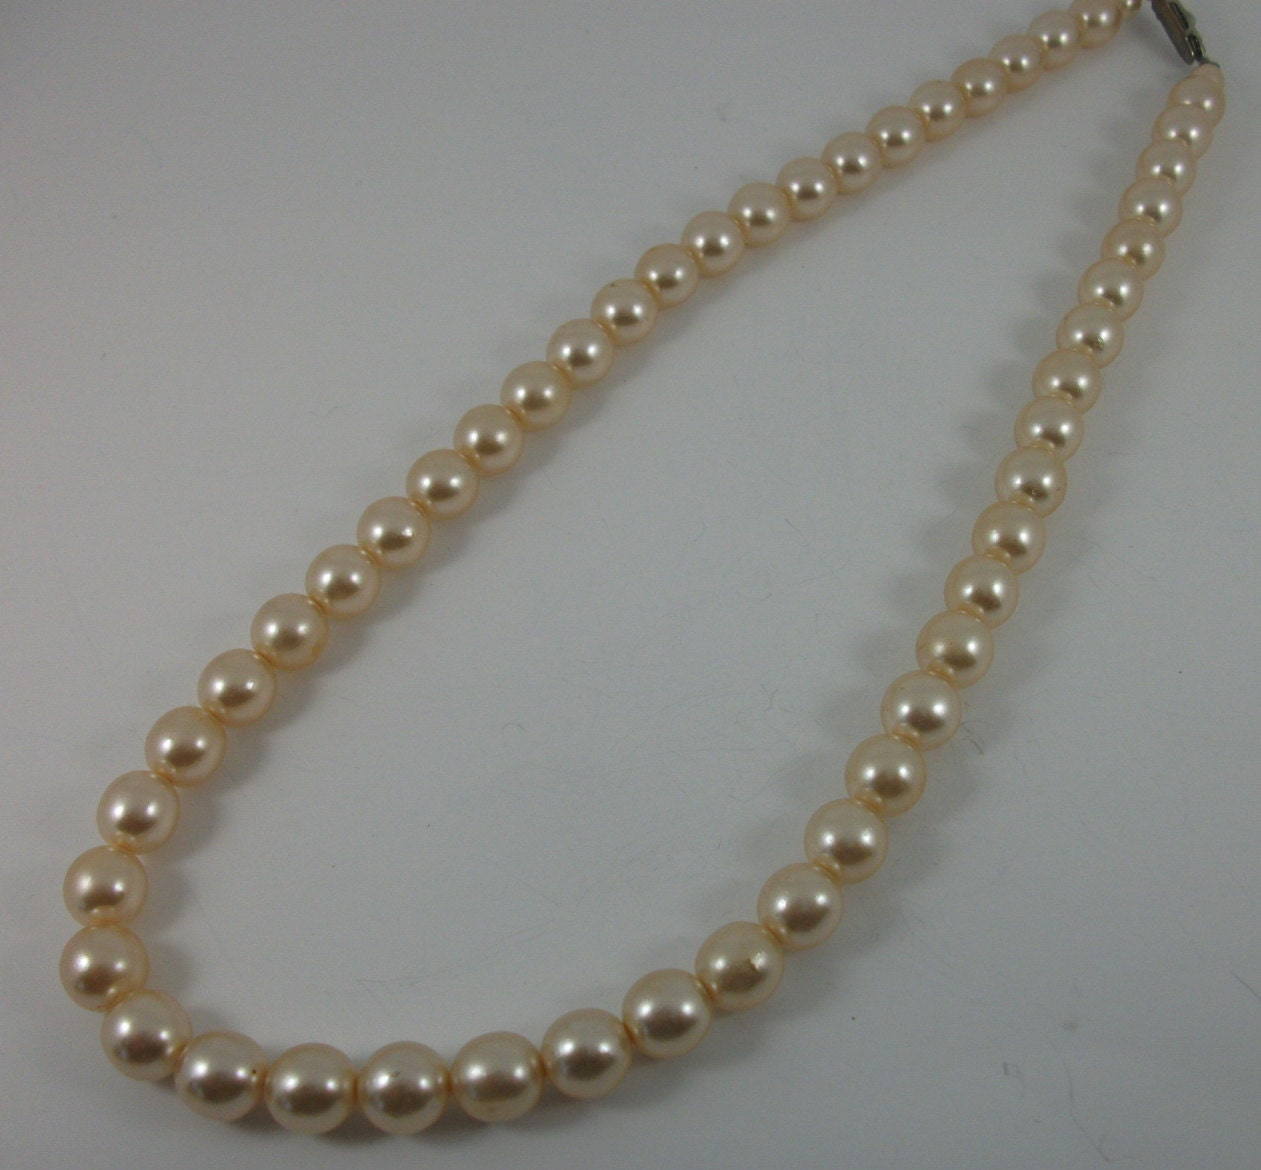 Pearl Necklace Clasps: Vintage Pearl Necklace Rhinestone Clasp Ivory Pearls Short